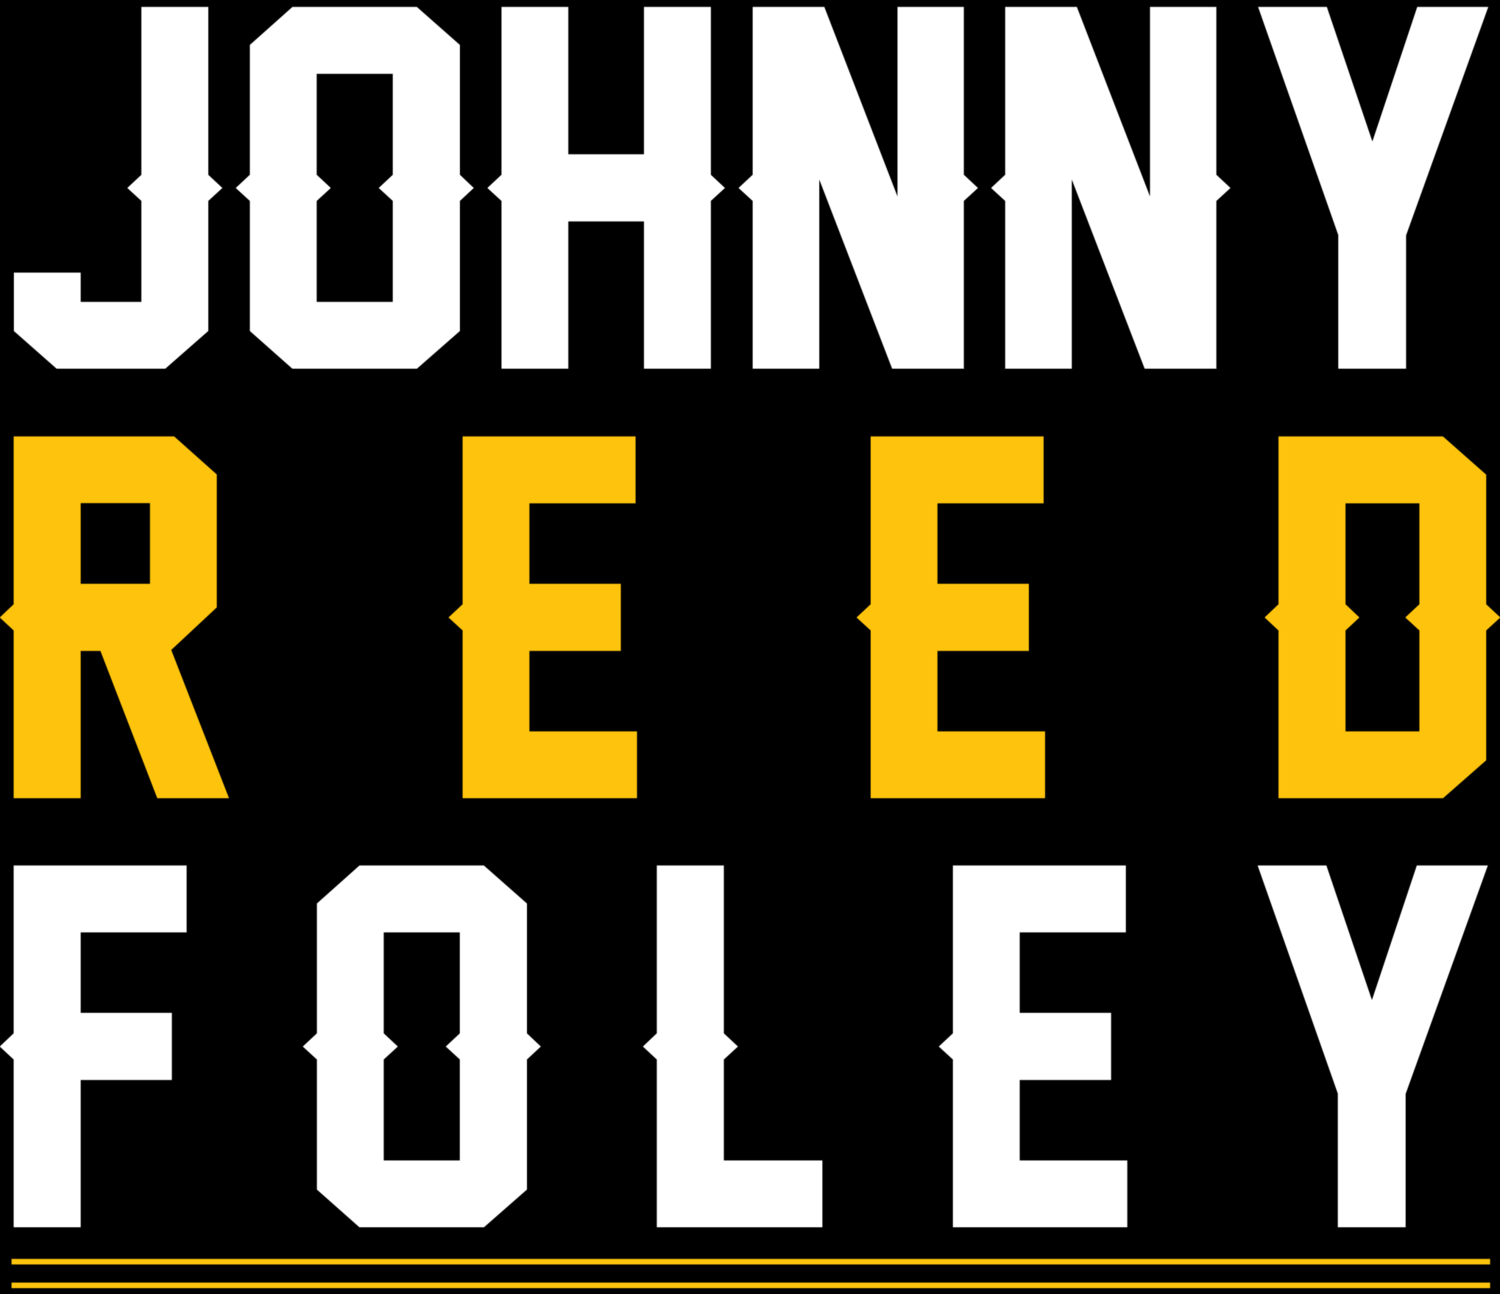 Johnny Reed Foley